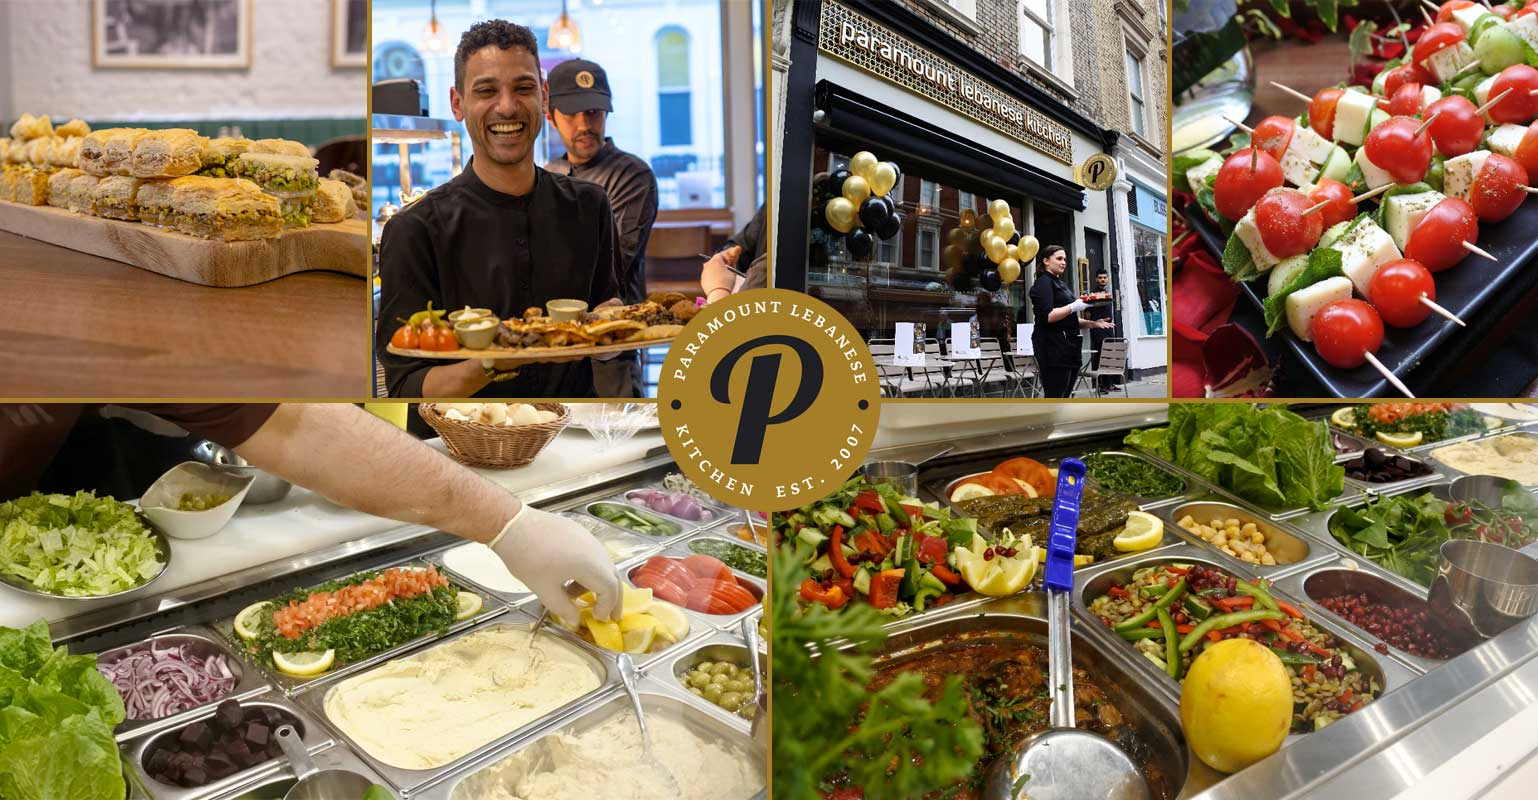 Declared As The Fastest Growing Lebanese Restaurant Chain In The World,  Paramount Lebanese Kitchen Boldly Debuted In The UK This Past Tuesday With  The ...